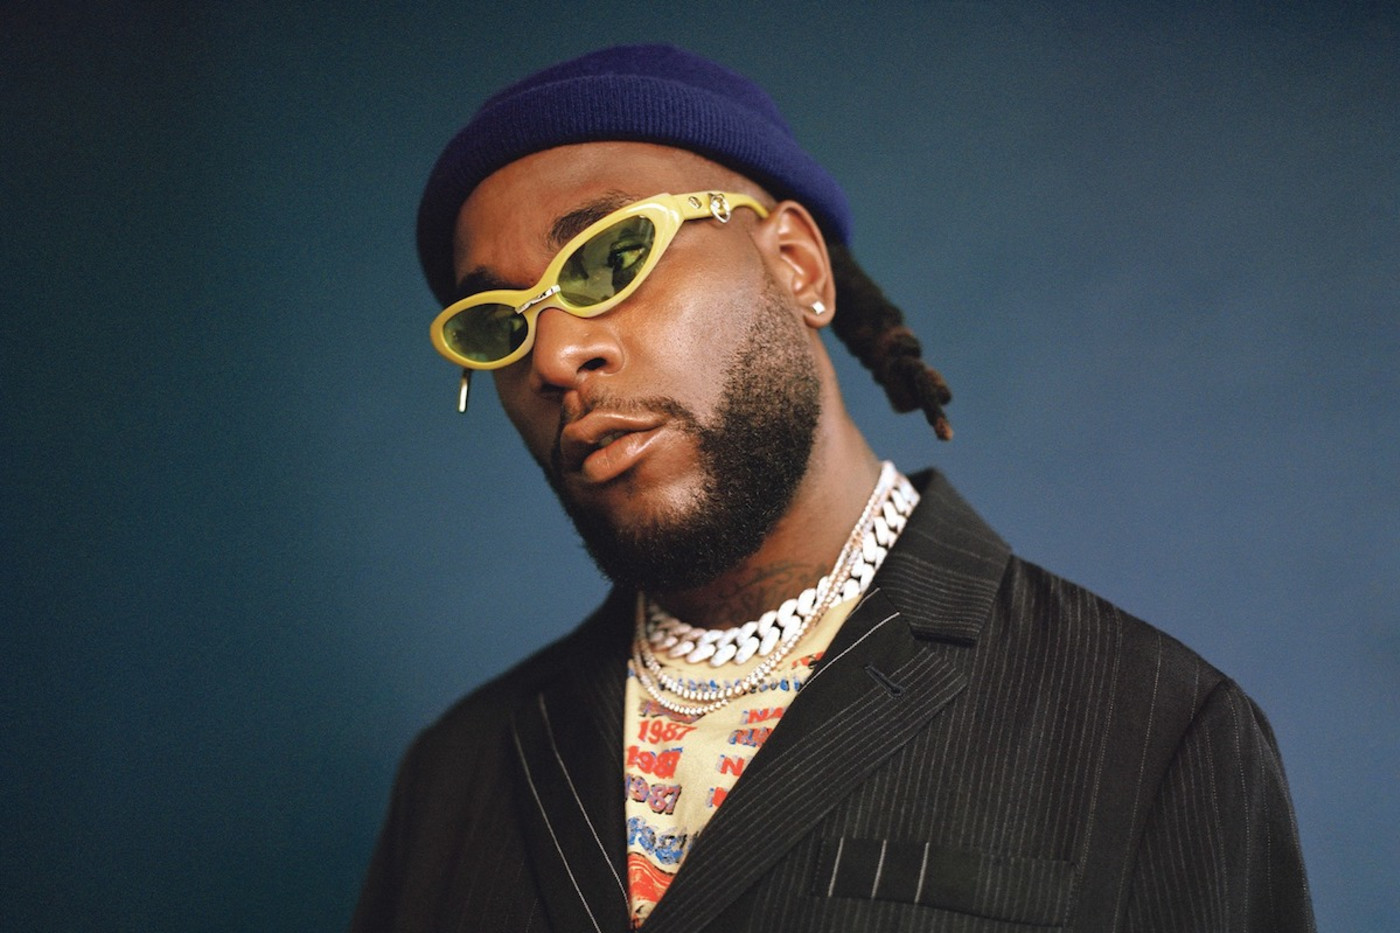 burna-boy-breaks-spotify-record-joe-biden-season-of-darkness-dnc-2020-harry-kane-self-isolate-latest-news-global-world-stories-friday-august-2020-style-rave